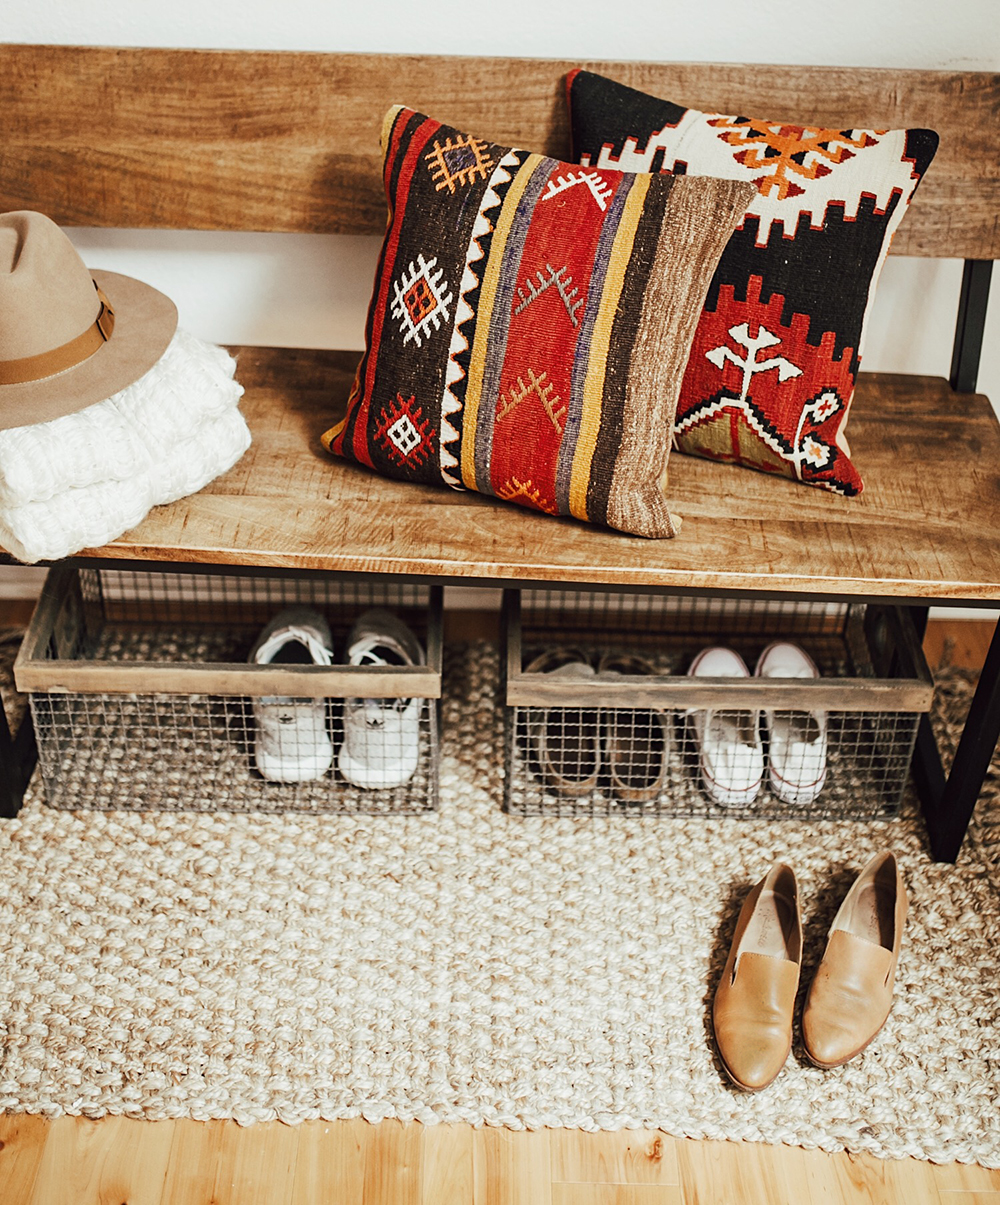 Home Decor Austin: Our Bohemian Entryway - LivvyLand